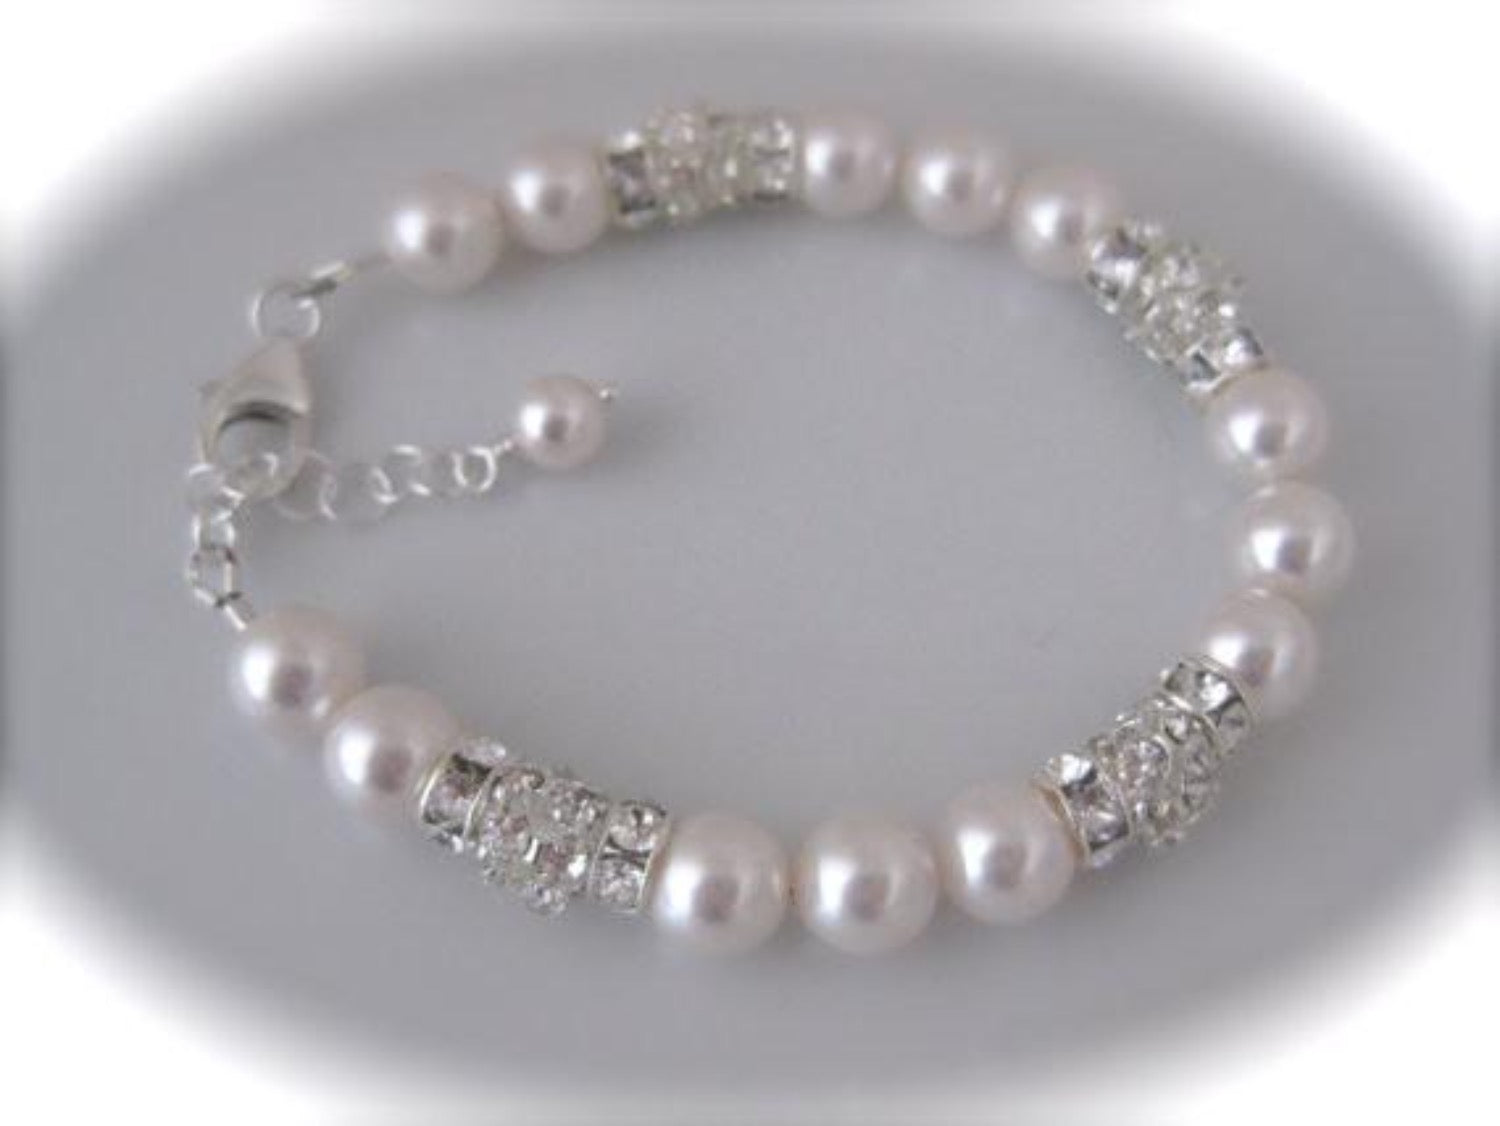 Rhinestone and pearl bridal bracelet for weddings - Clairesparklesbridal